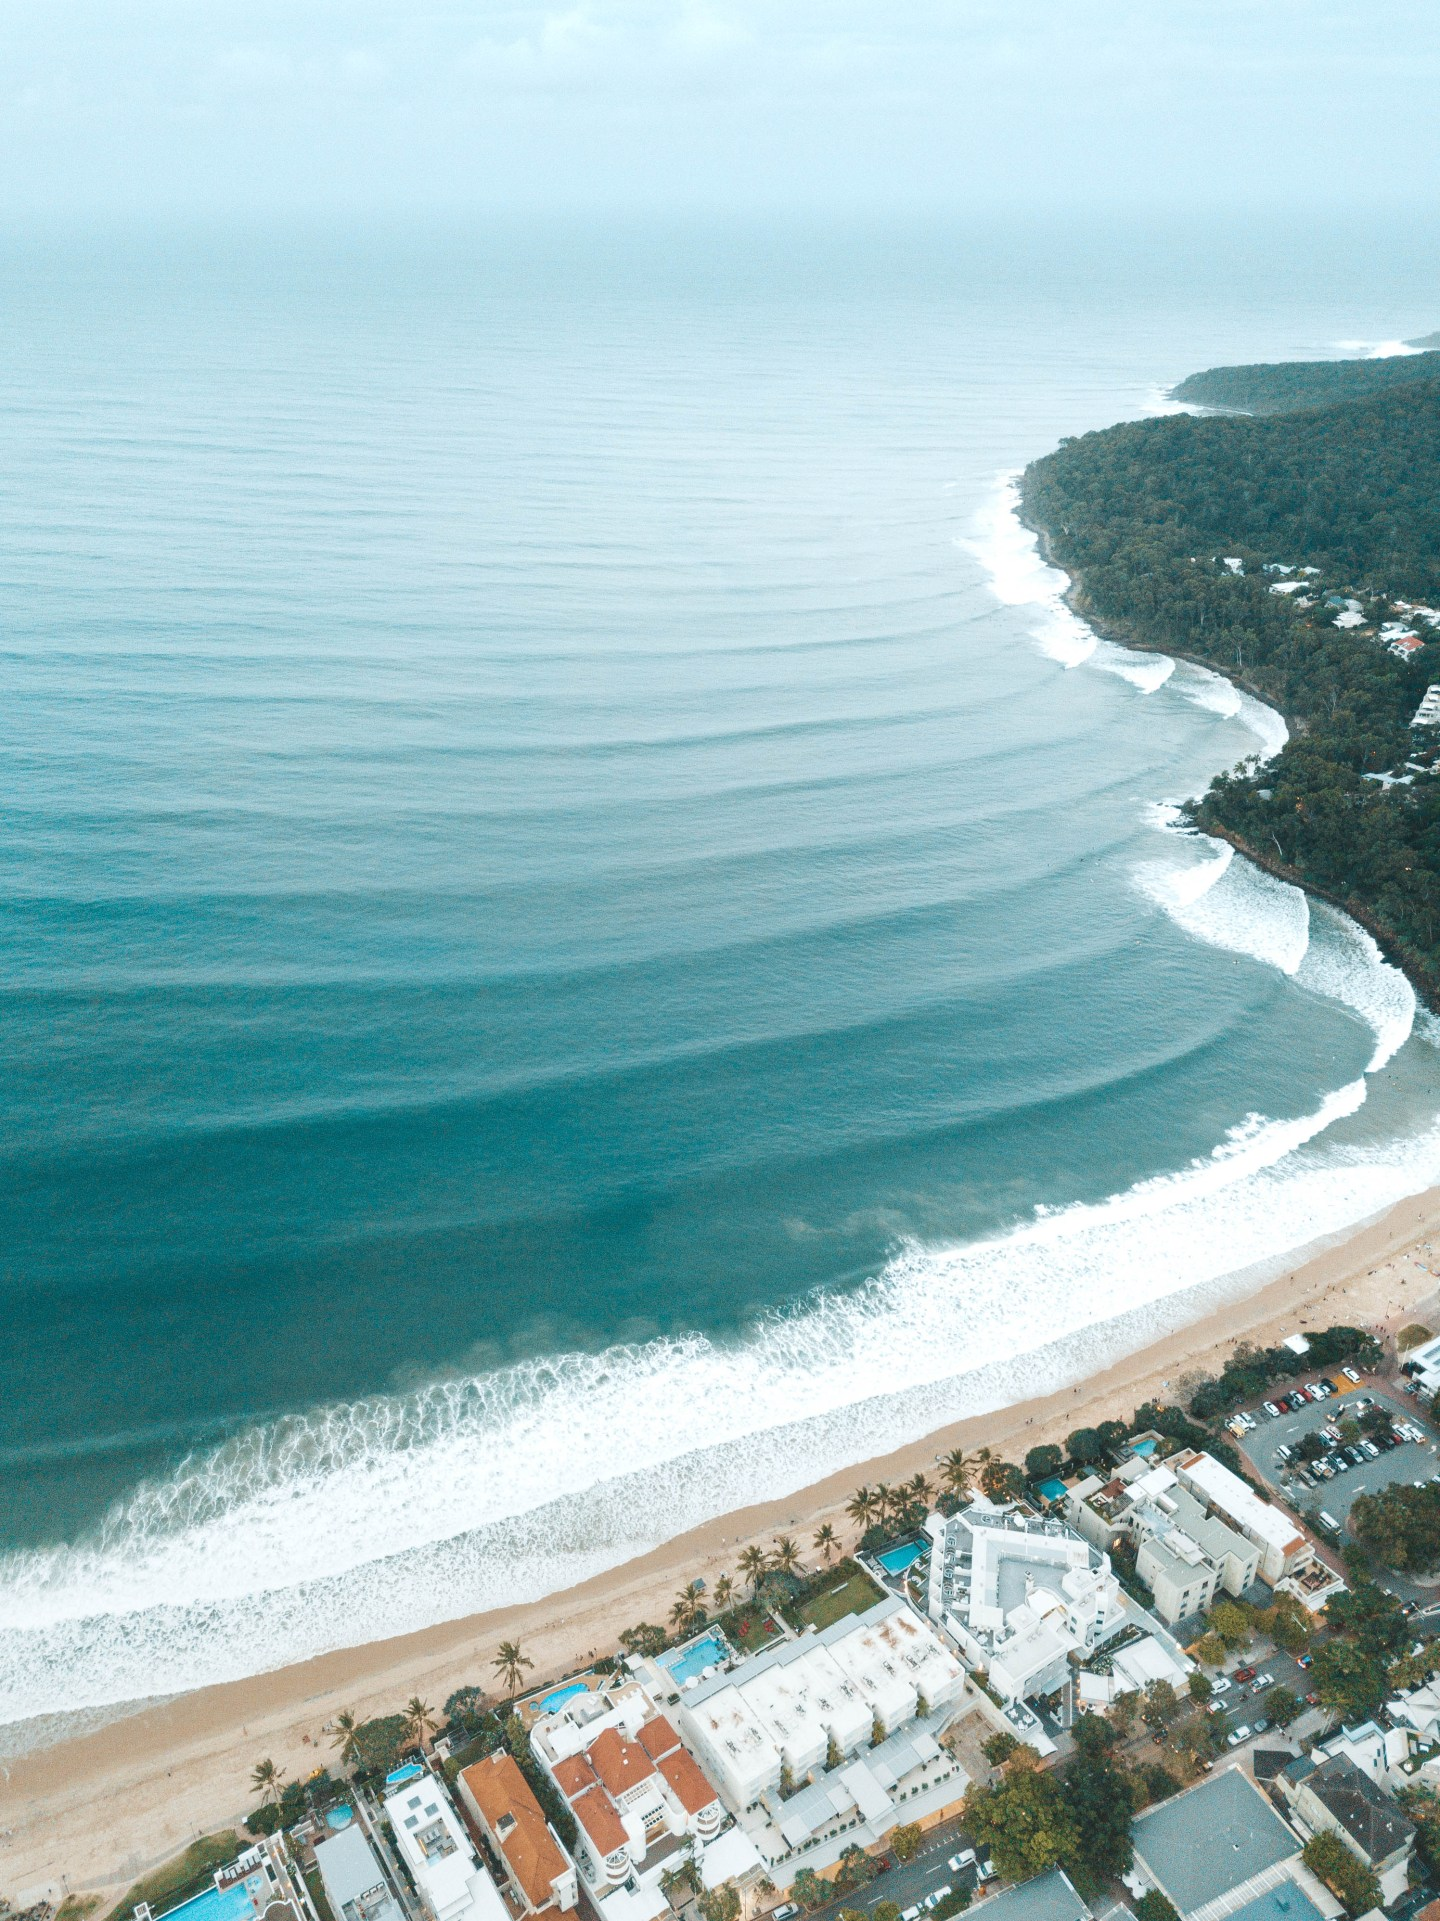 Drone photography for beginners: 7 photos to make you want a drone